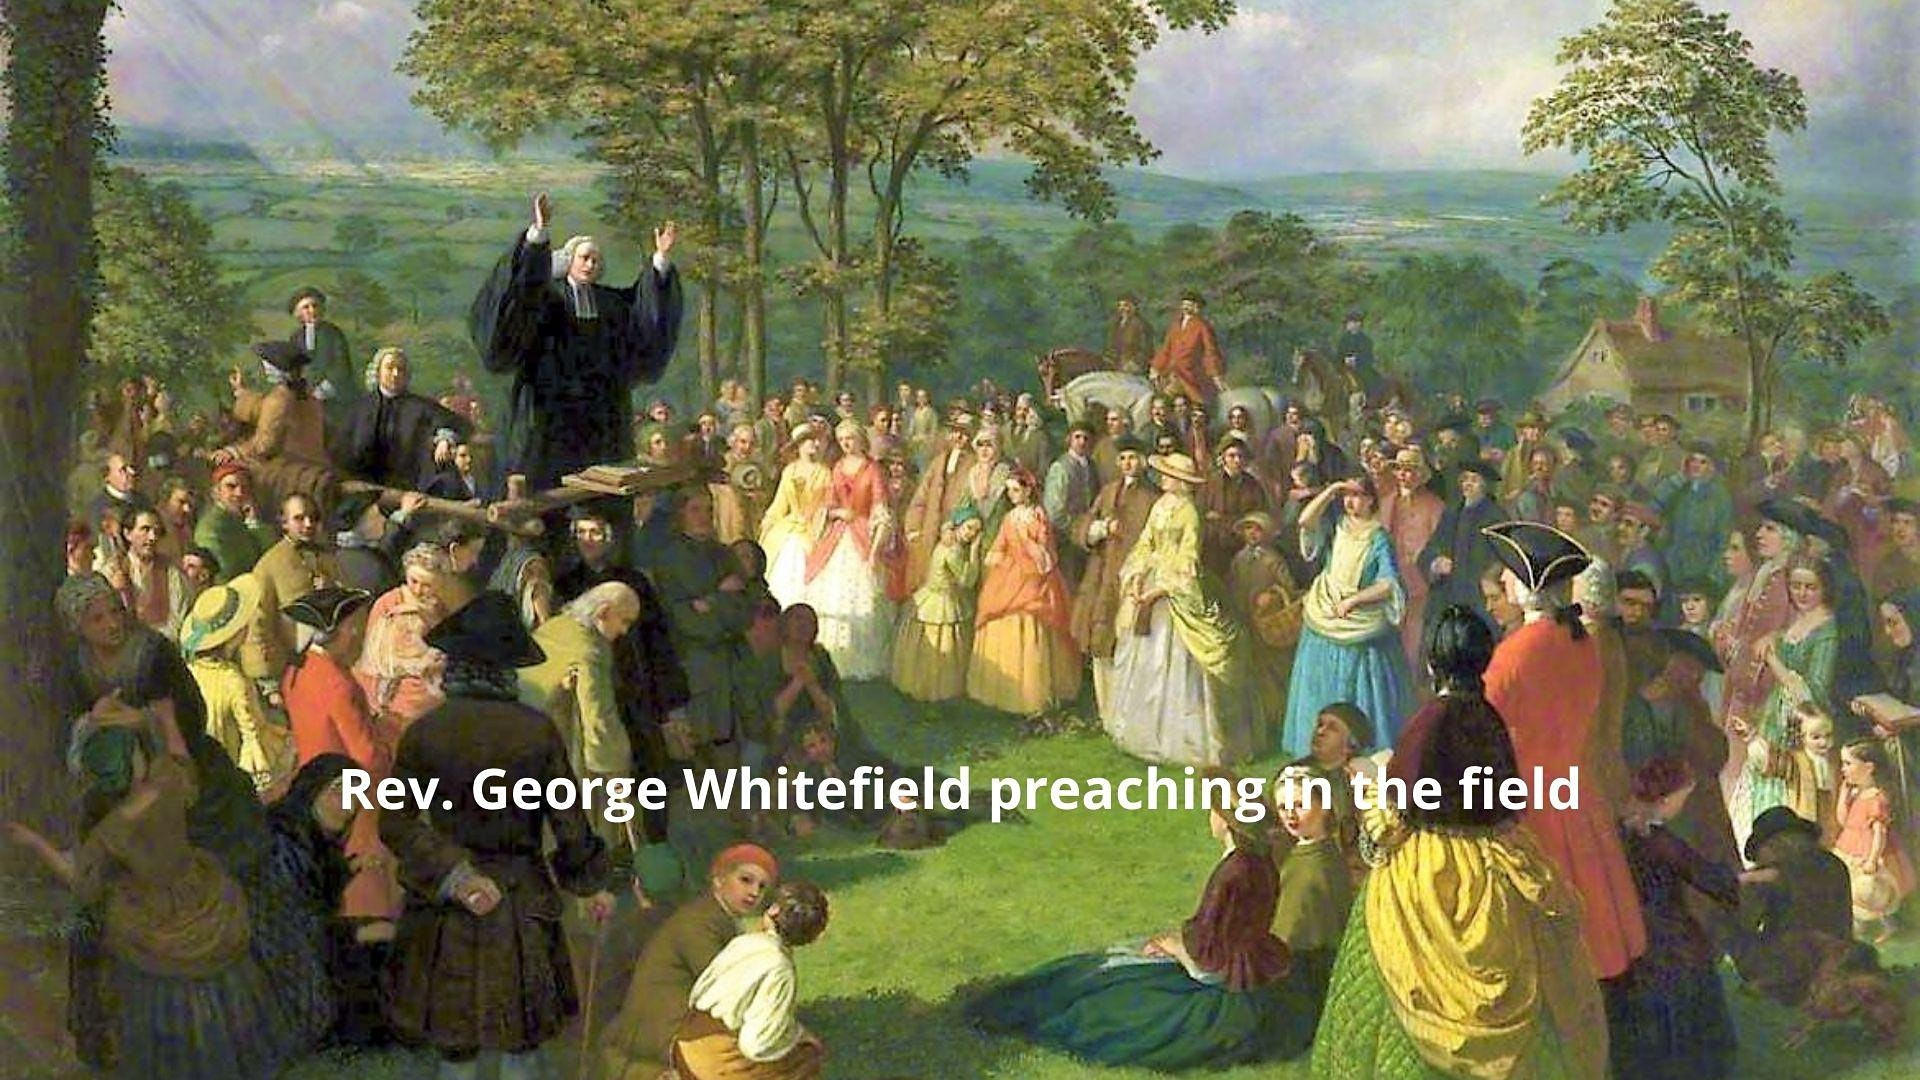 Worship service to commemorate the life, legacy and ministry of George Whitefield. Tom Schwanda, Mark Noll, Sean McGever. Paul Detterman.